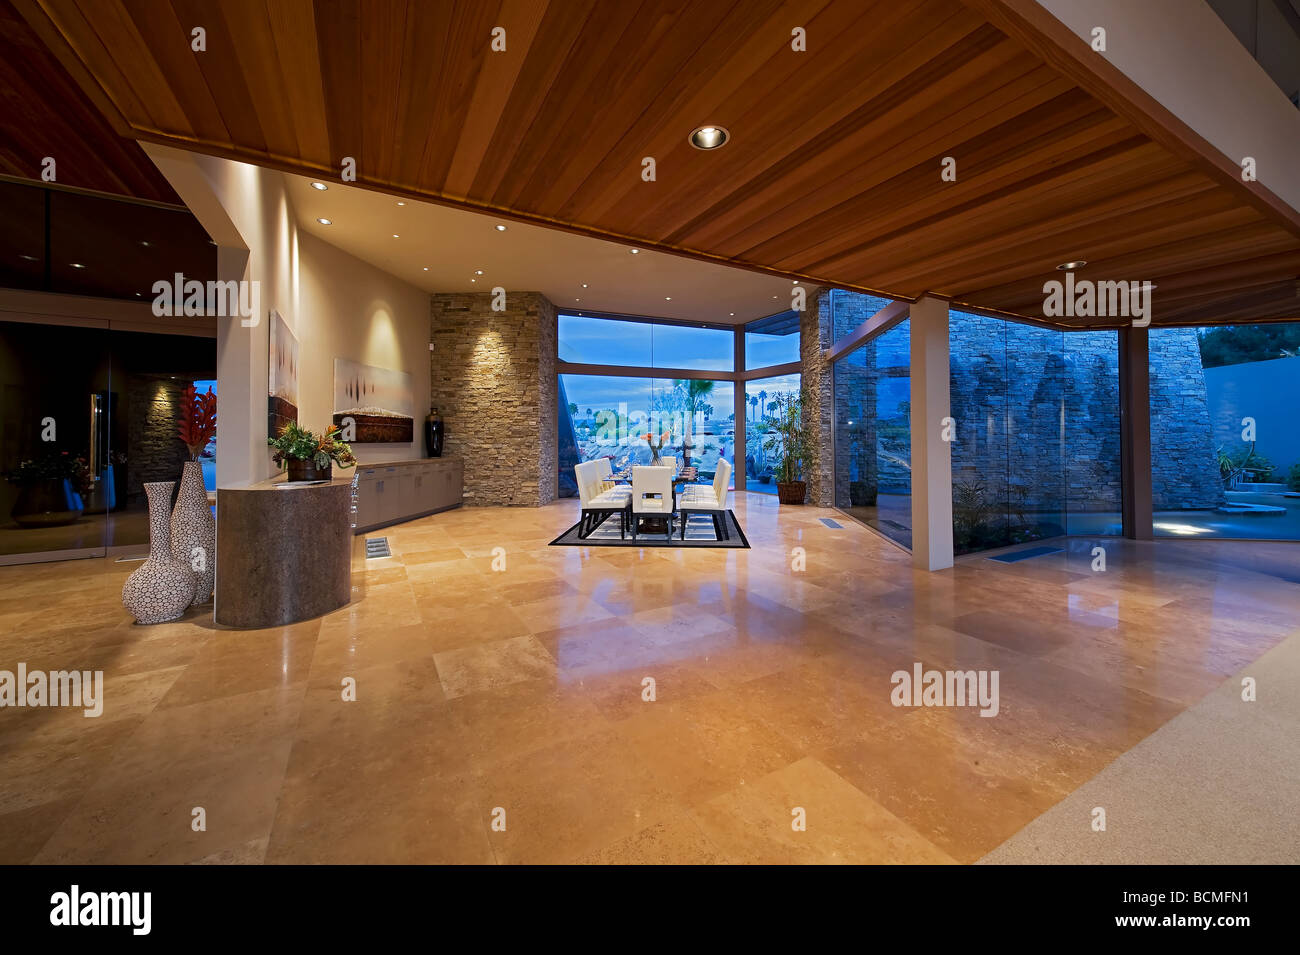 Distant view of ultra modern large dining room with glass walls - Stock Image